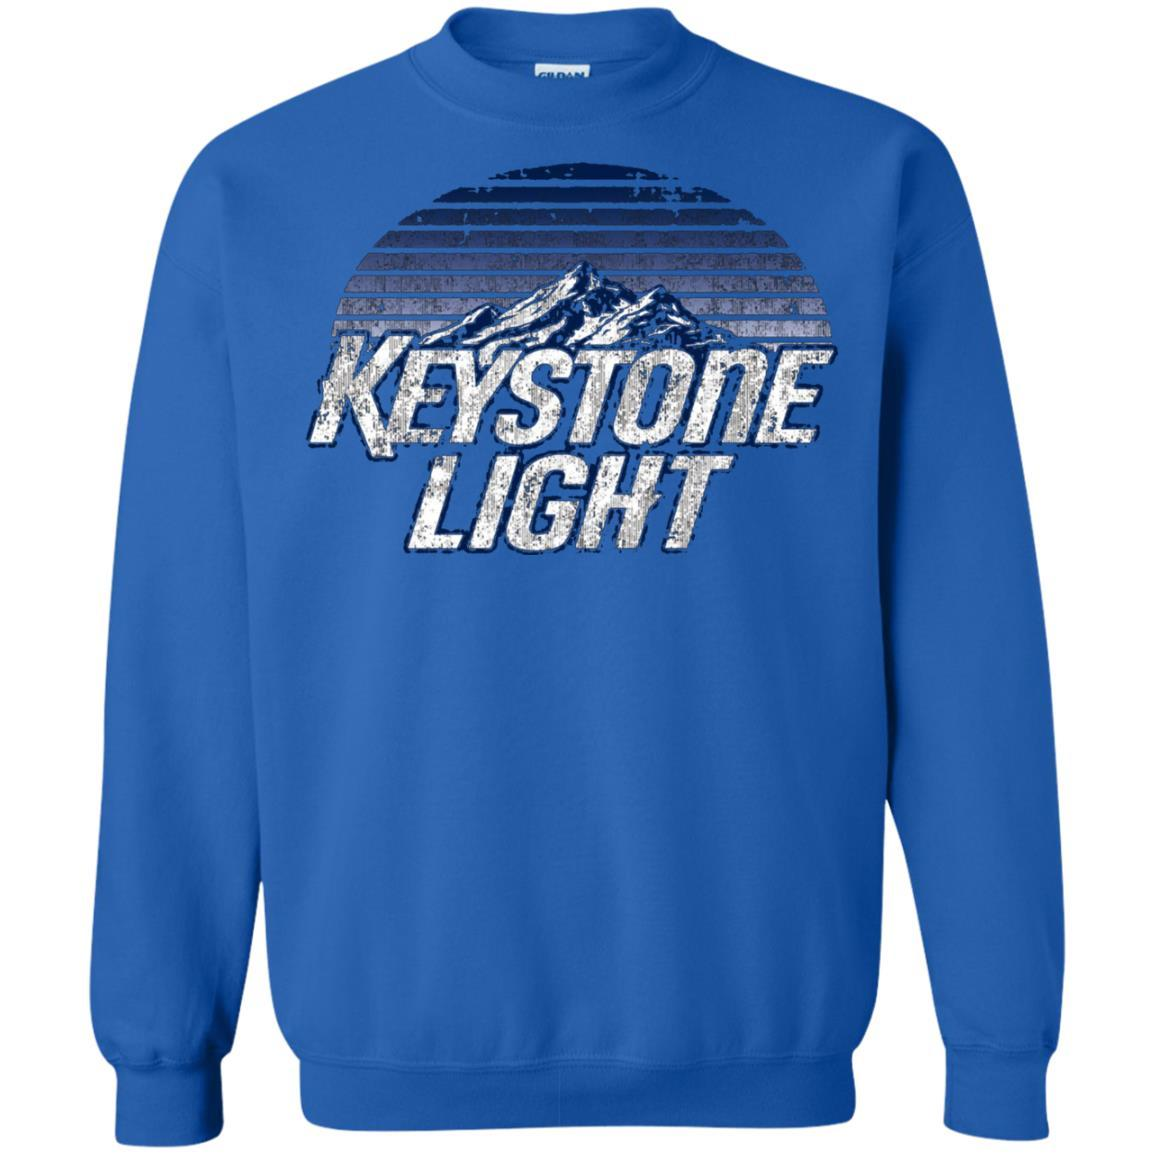 Keystone Light Beer Classic Look - Pullover Sweatshirt Royal / 5XL